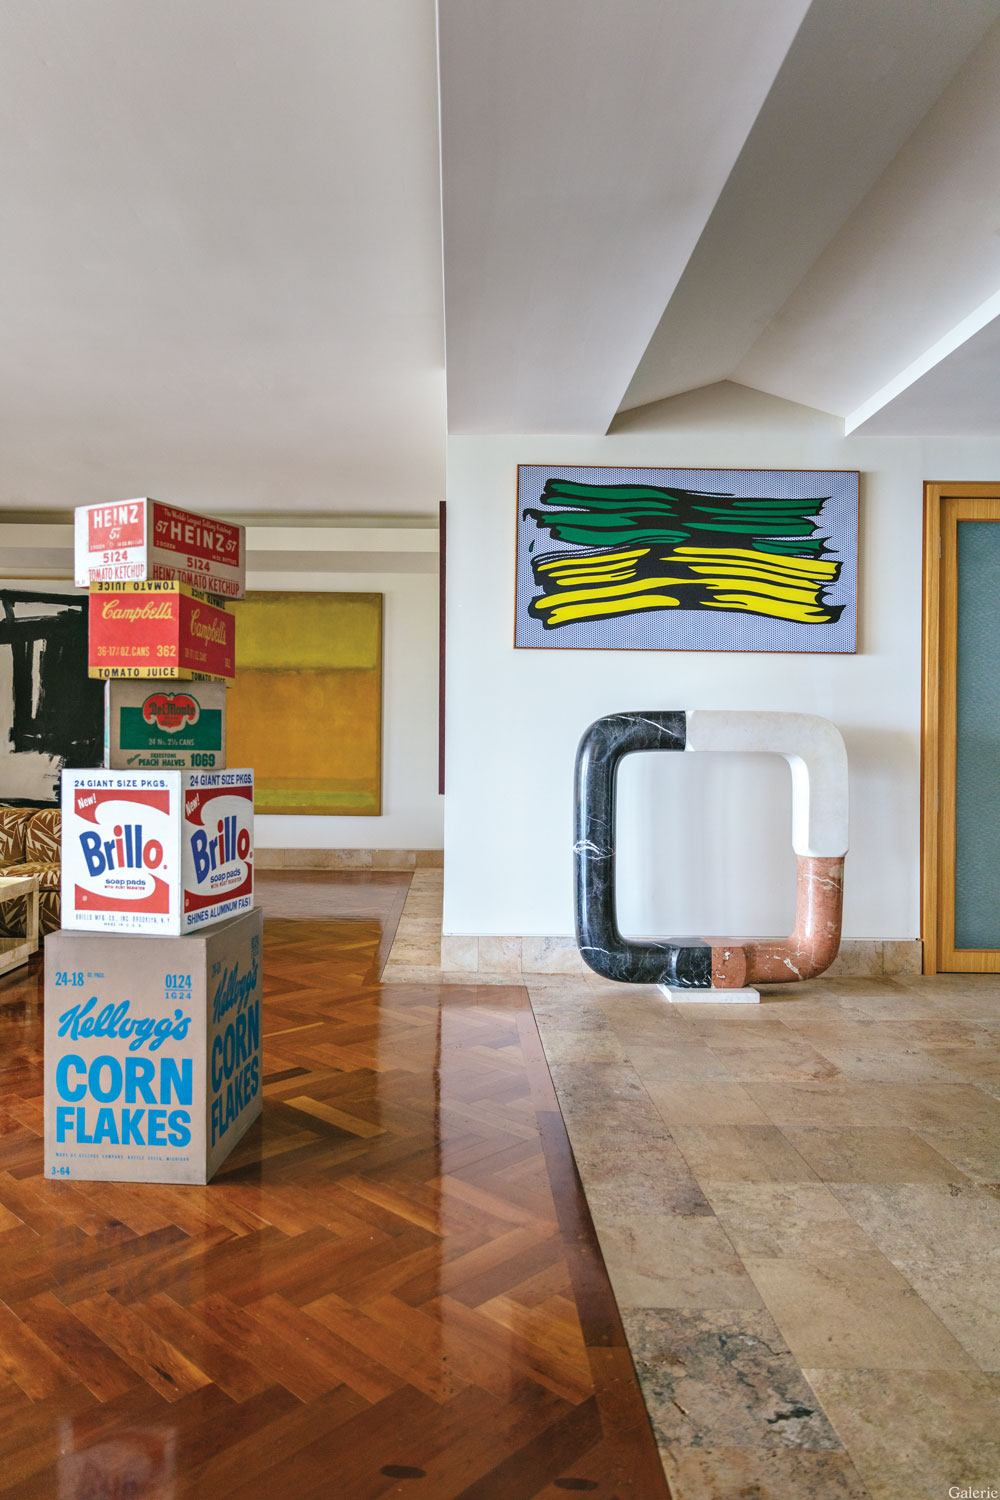 Works by Andy Warhol, Roy Lichtenstein, and Isamu Noguchi animate the Miami home of collector Martin Margulies.